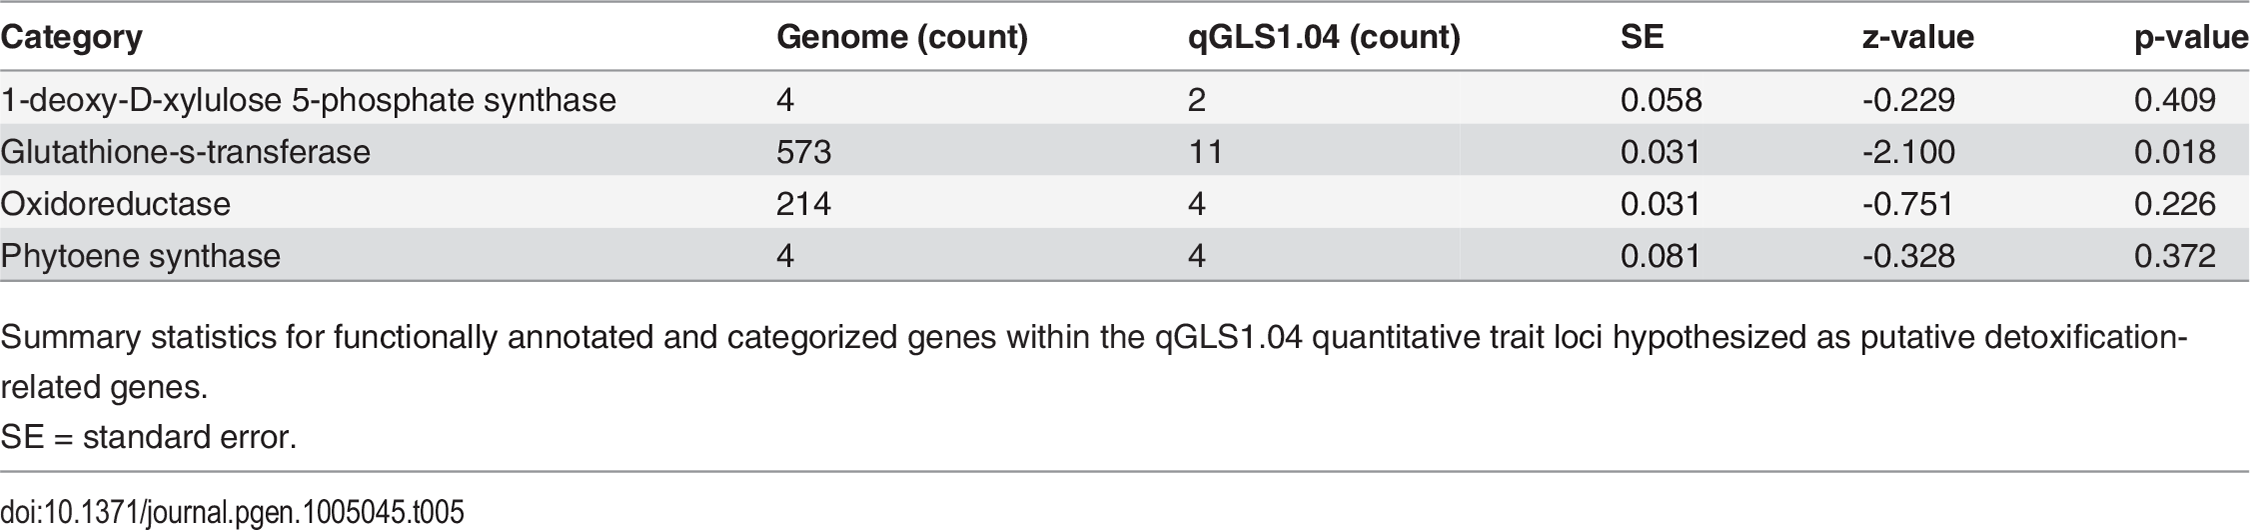 Summary statistics for detoxification-related genes underlying qGLS1.04.